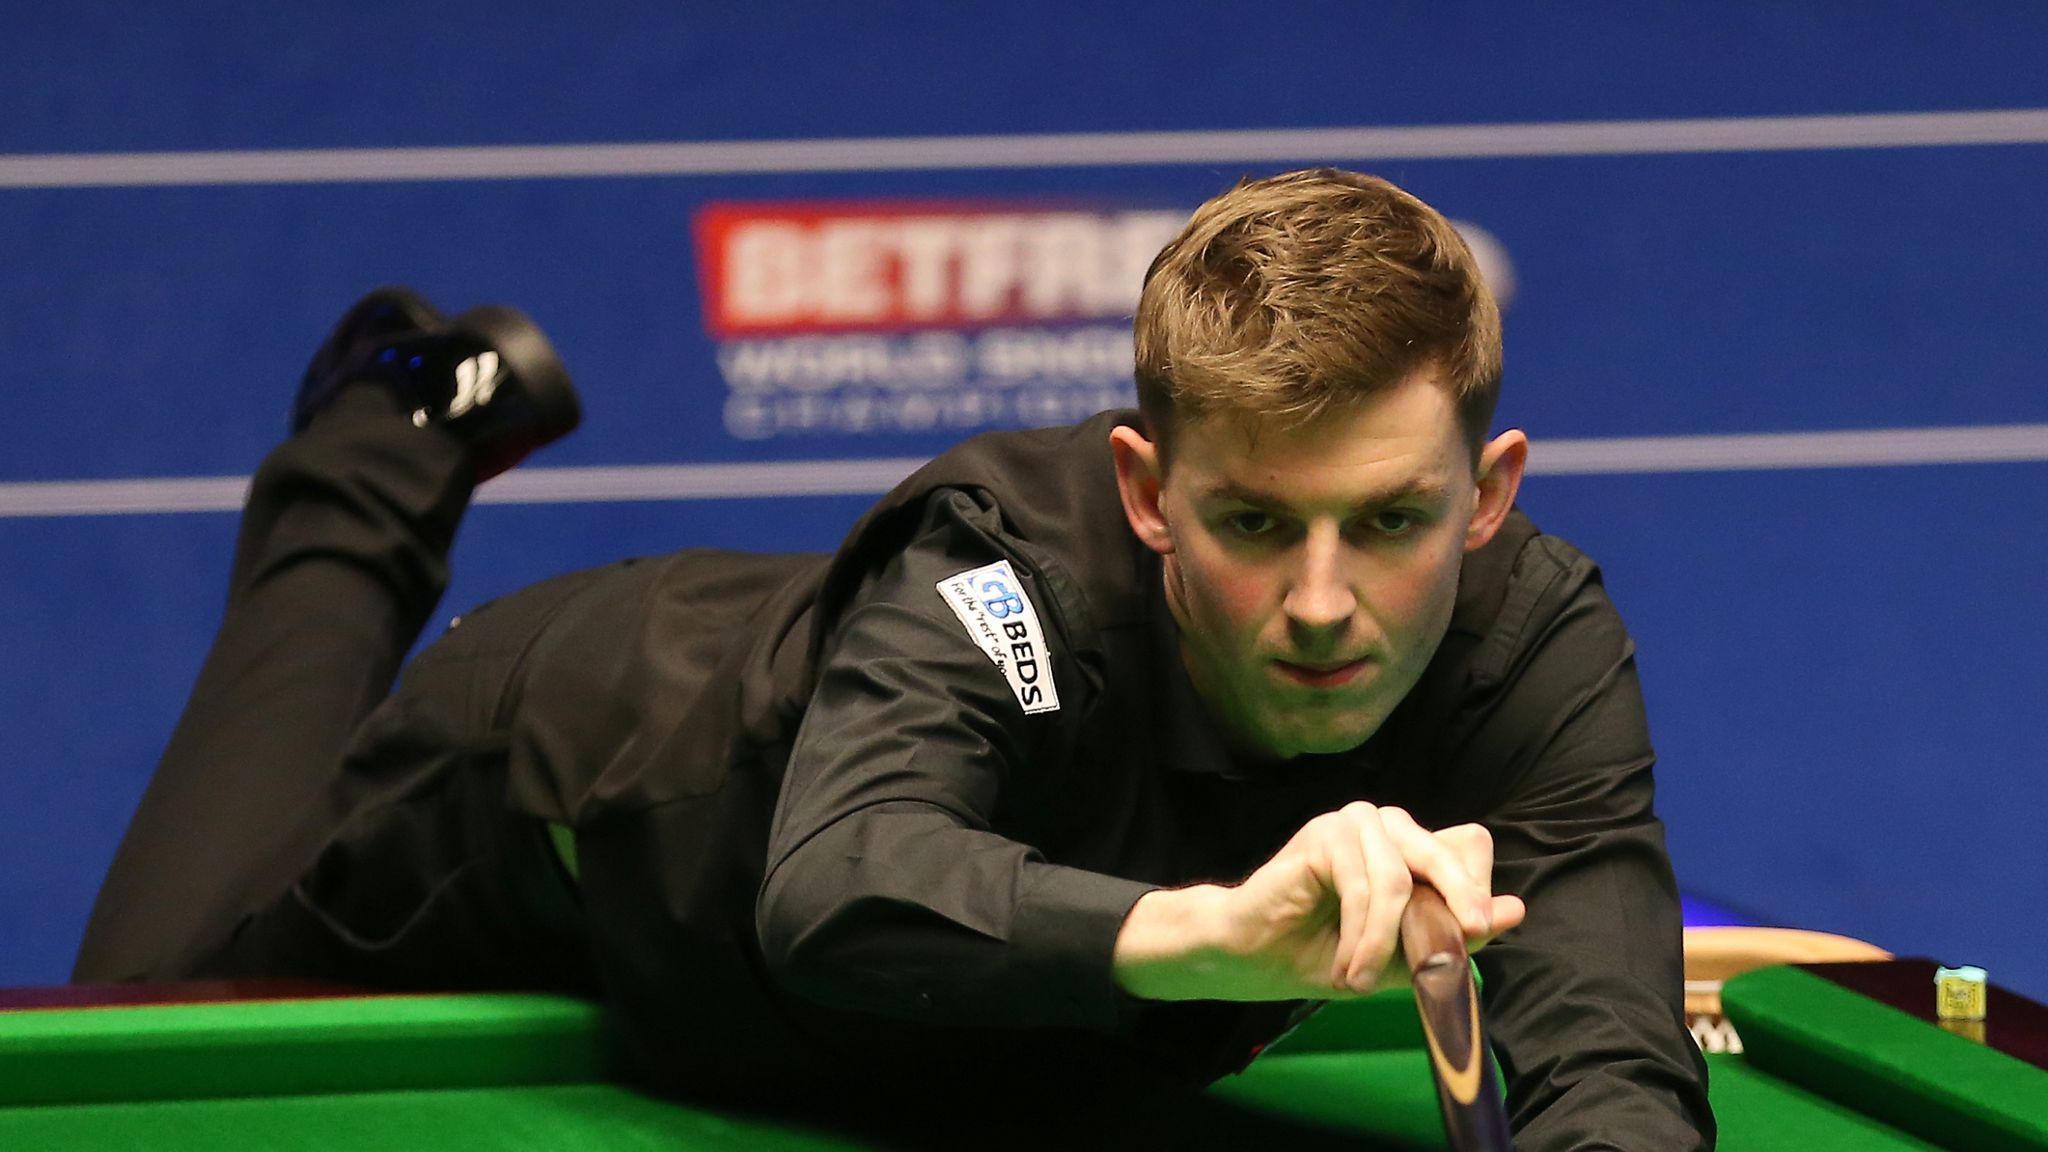 Mark Williams, James Cahill and Mark Selby out of World Snooker ...